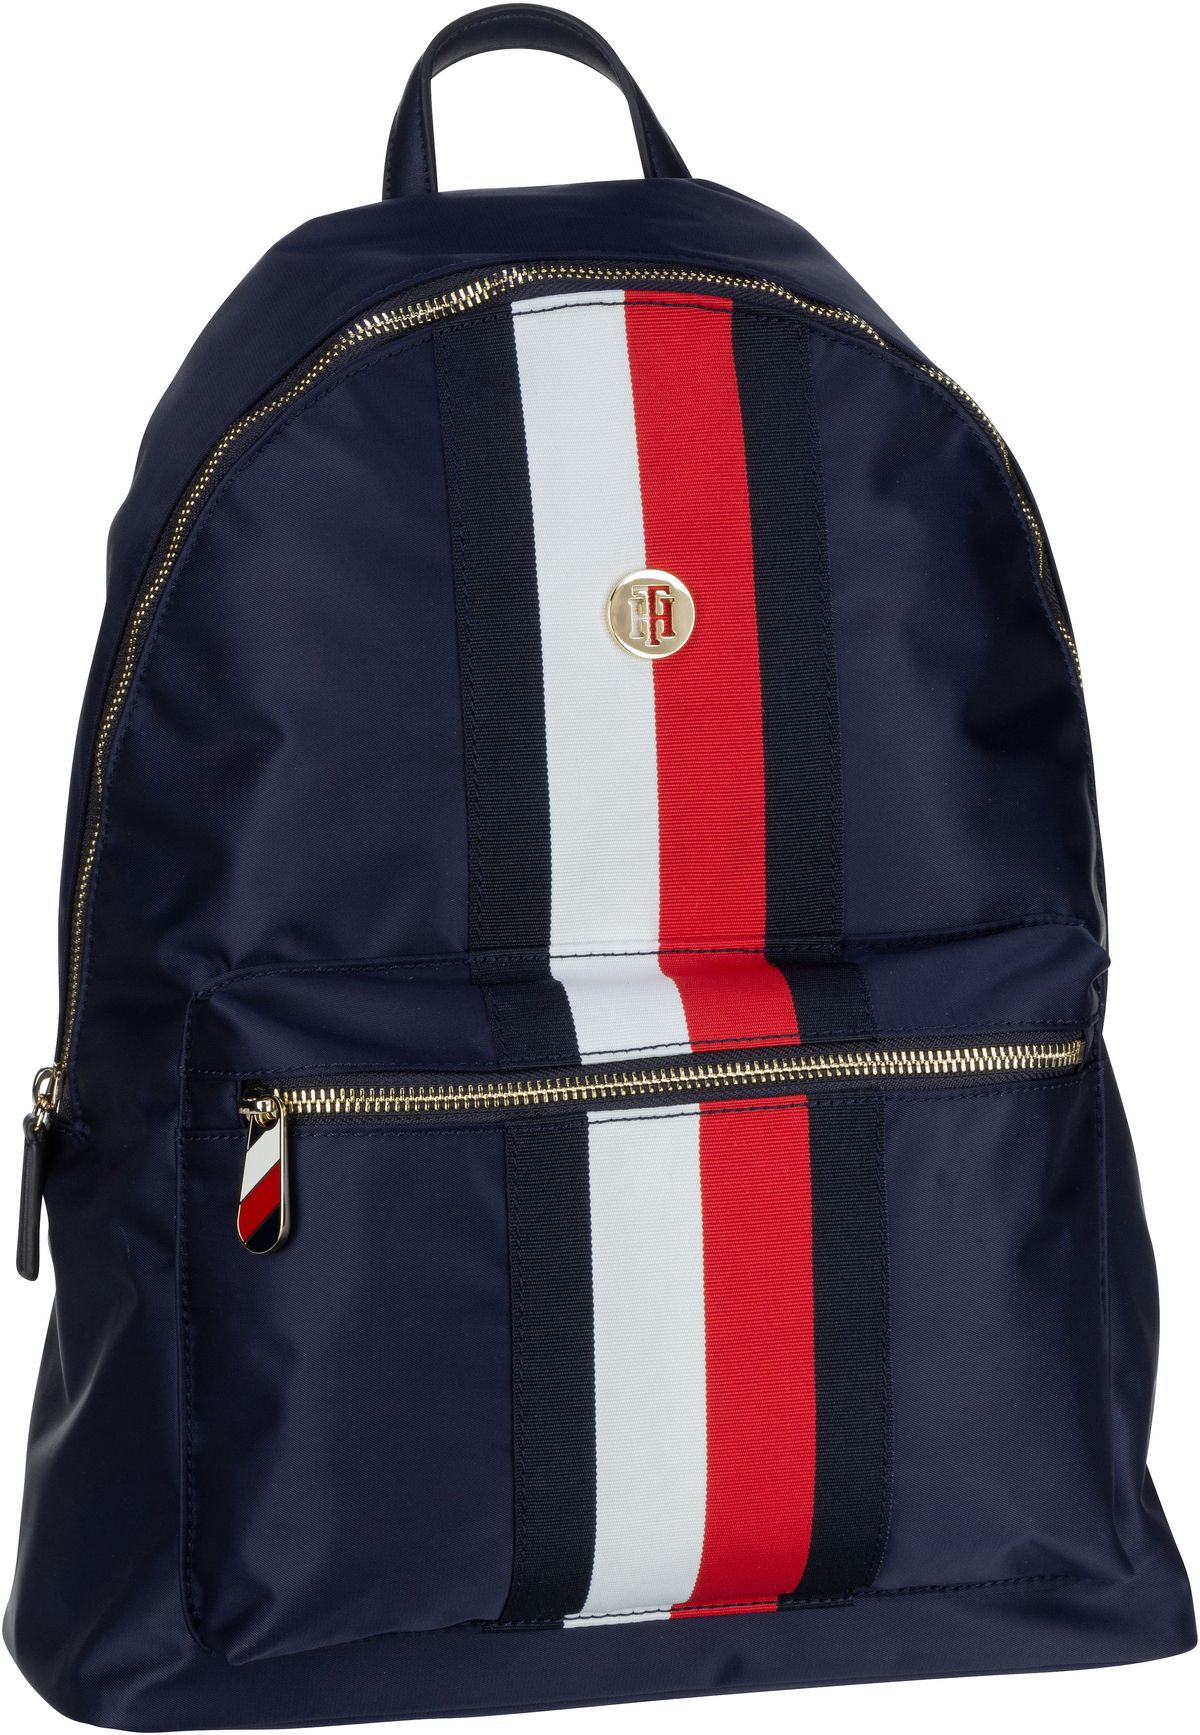 Rucksack / Daypack Poppy Backpack Corp SP20 Corporate